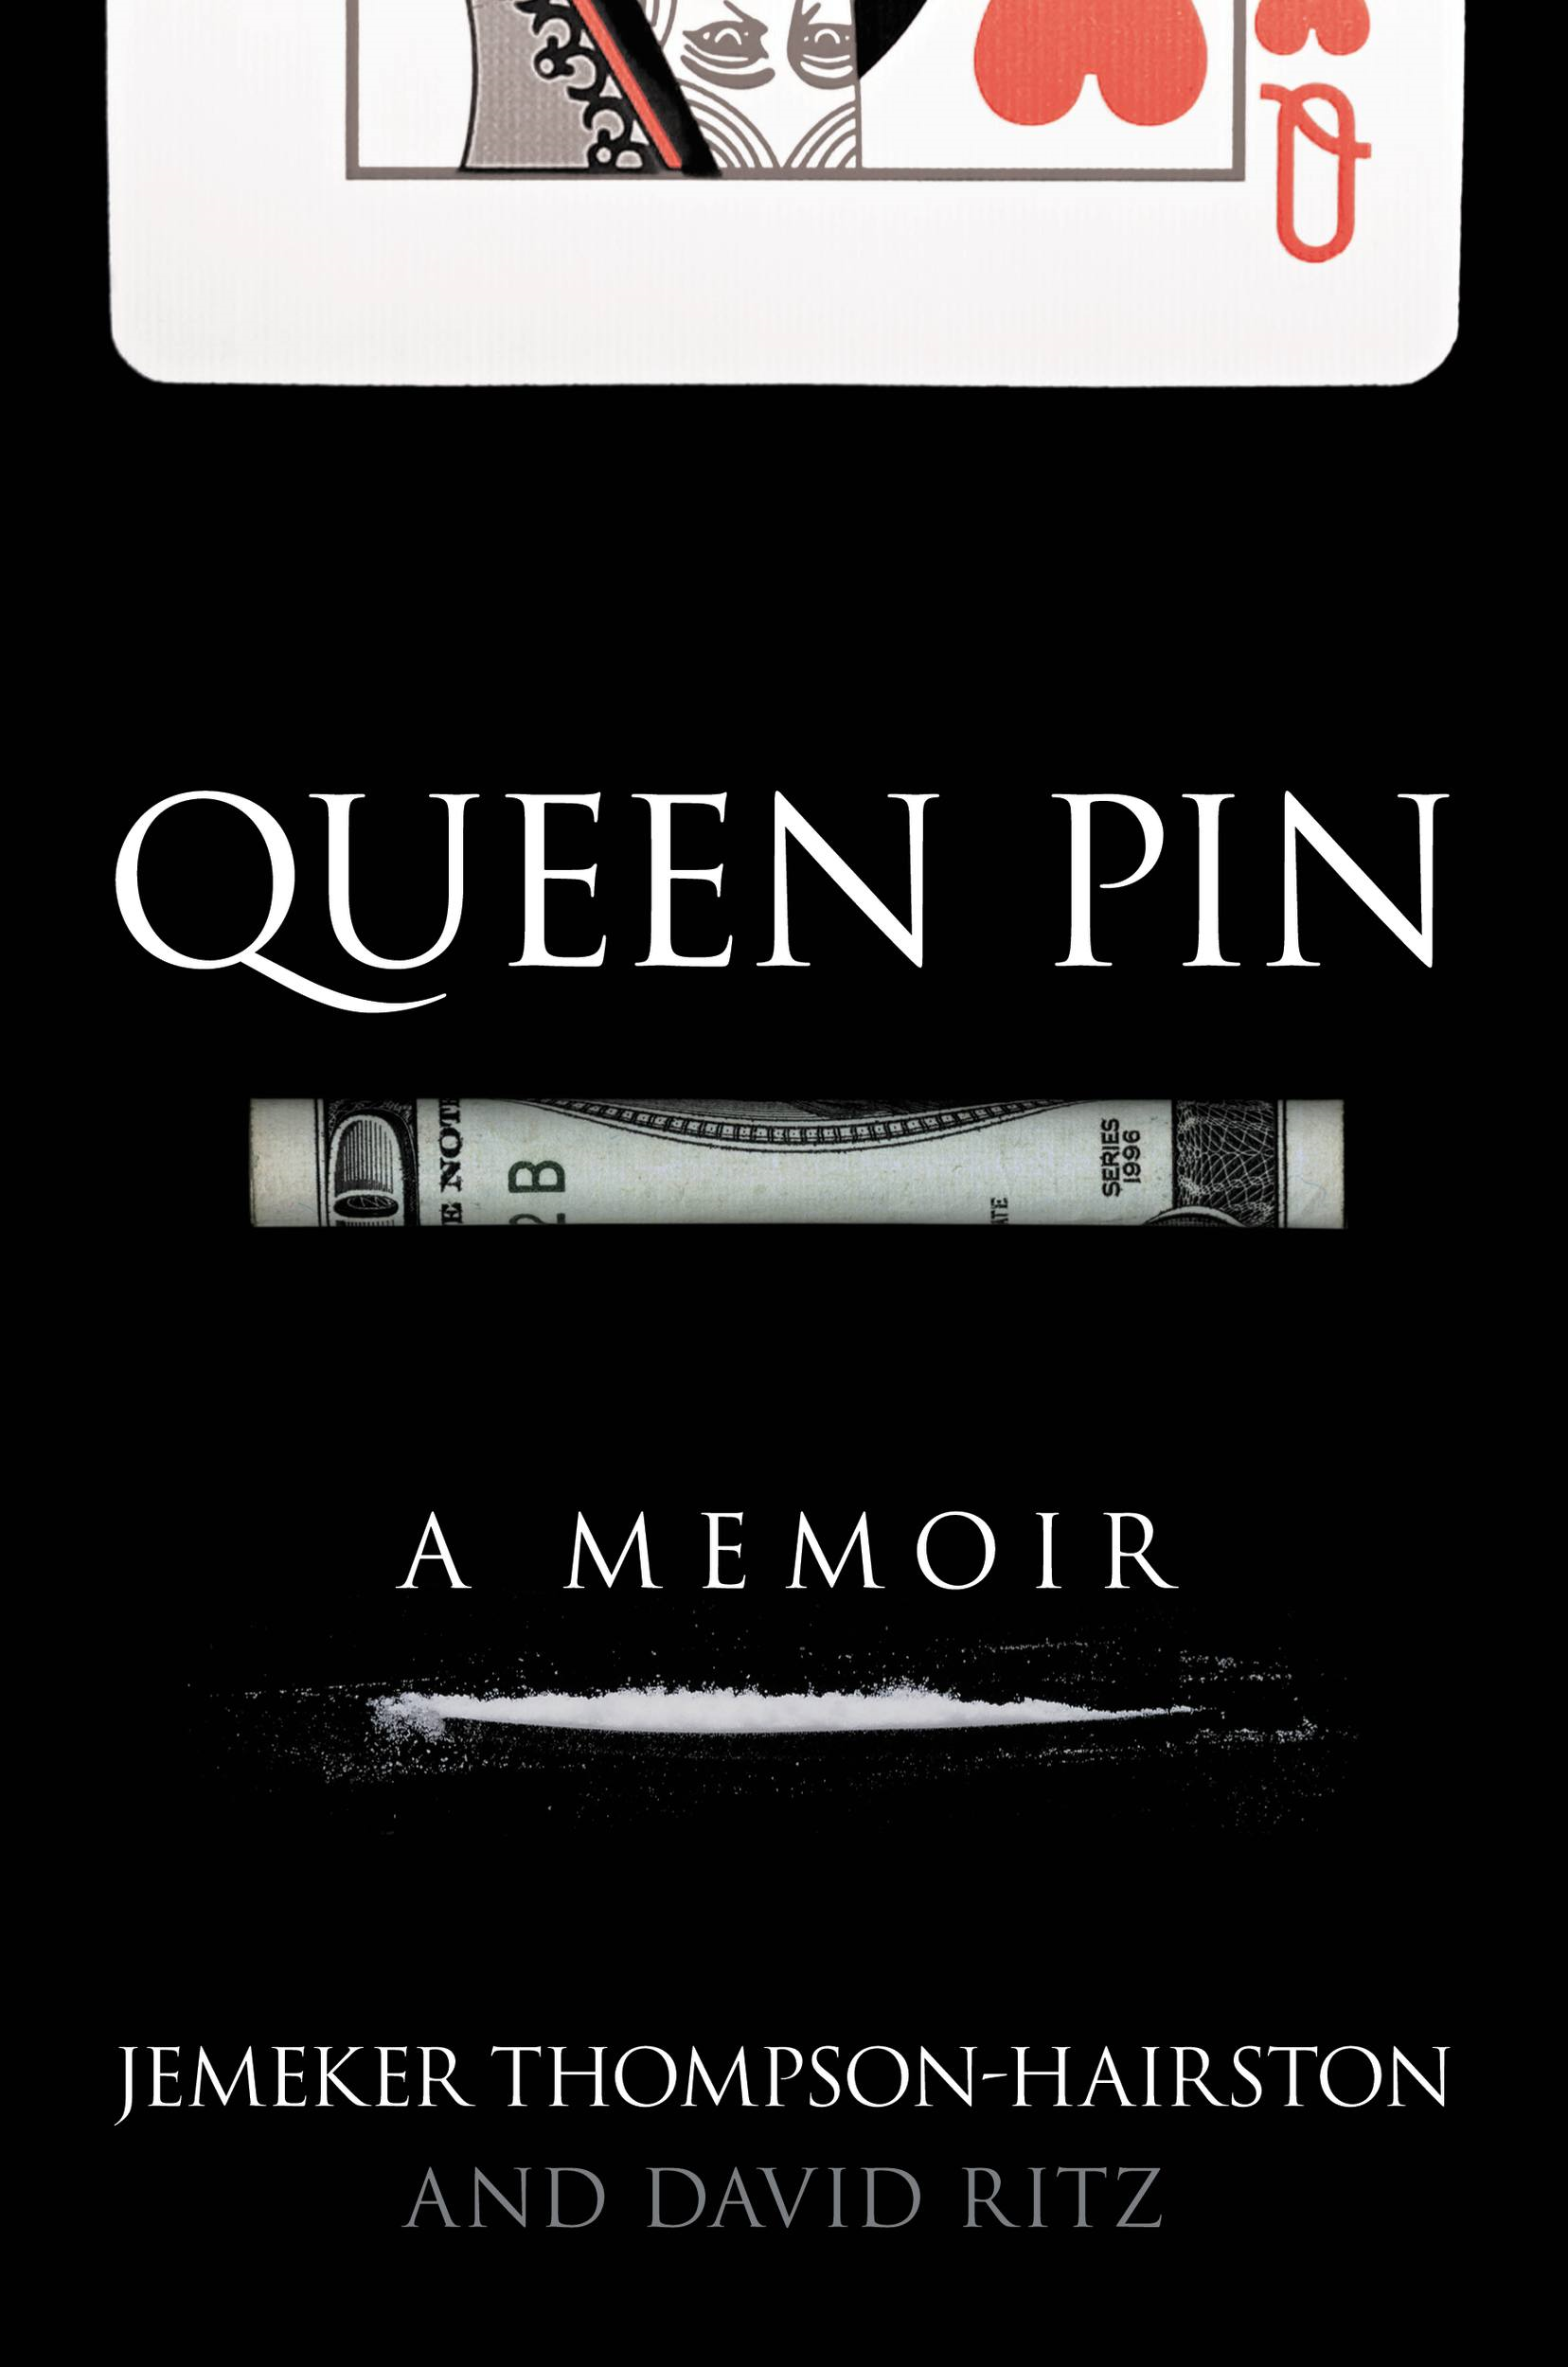 Queen Pin By: David Ritz,Jemeker Thompson-Hairston